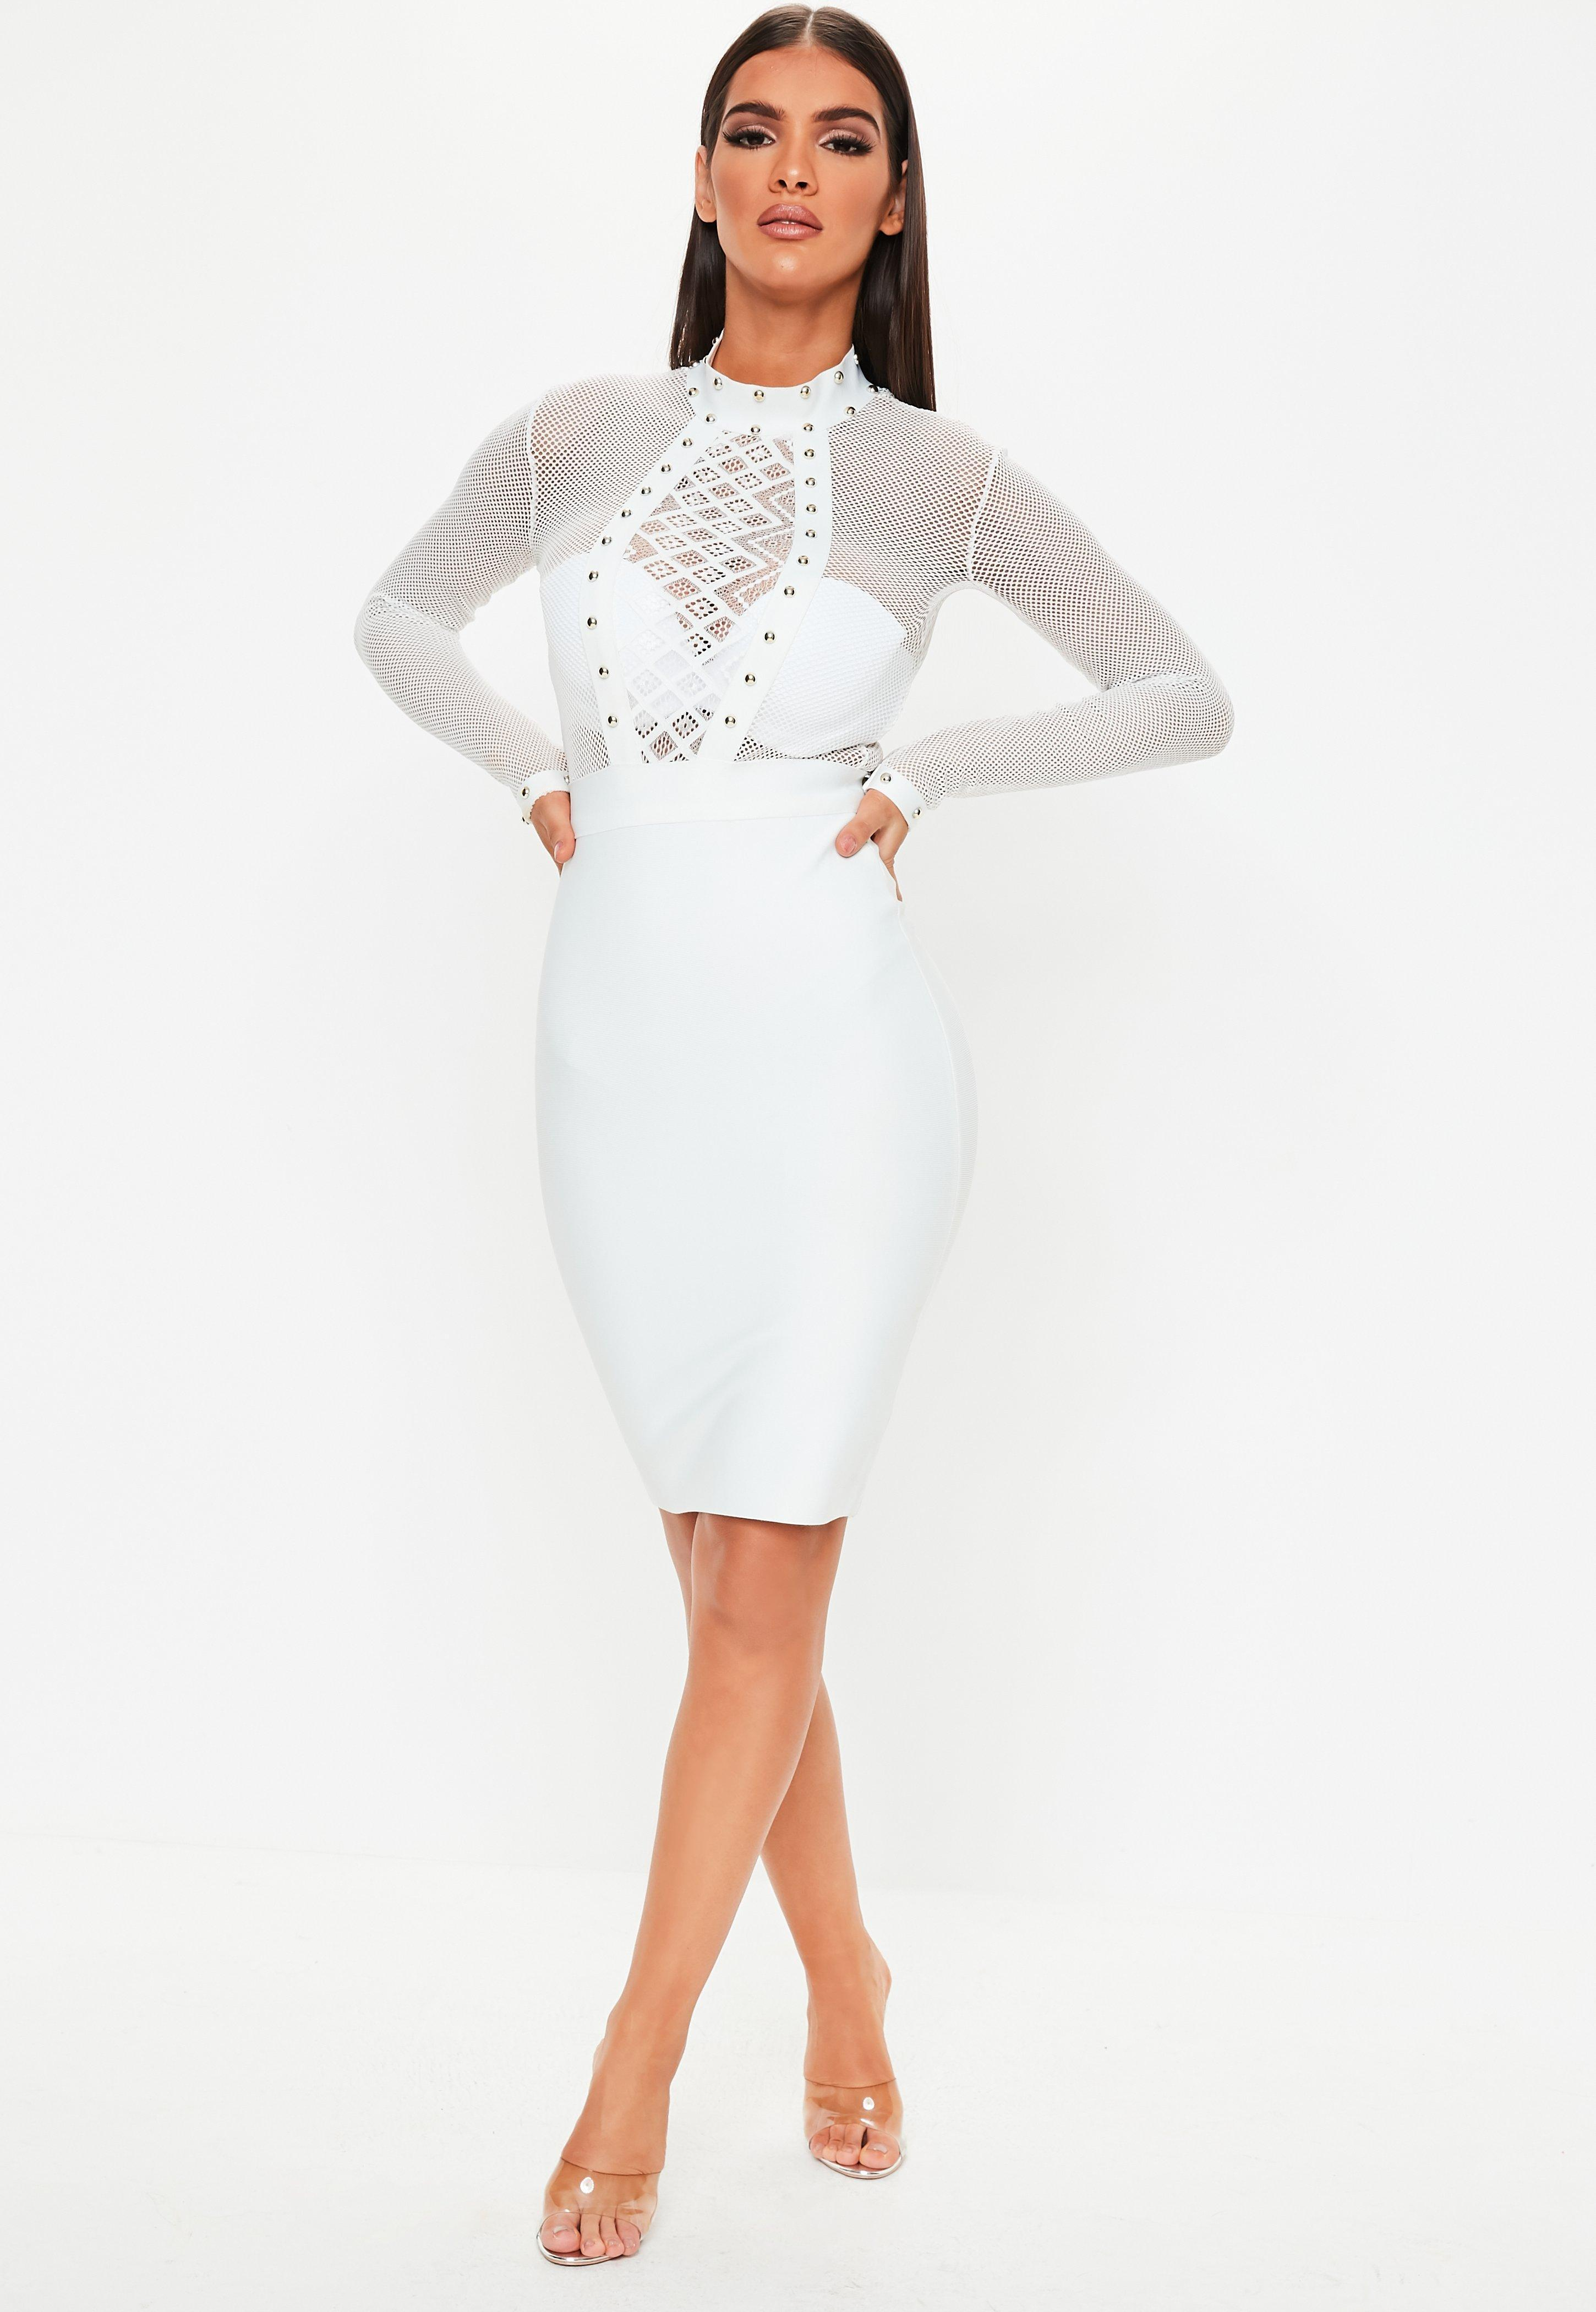 6f8bf295cdd Missguided - Premium White Lace Studded Bodycon Dress - Lyst. View  fullscreen